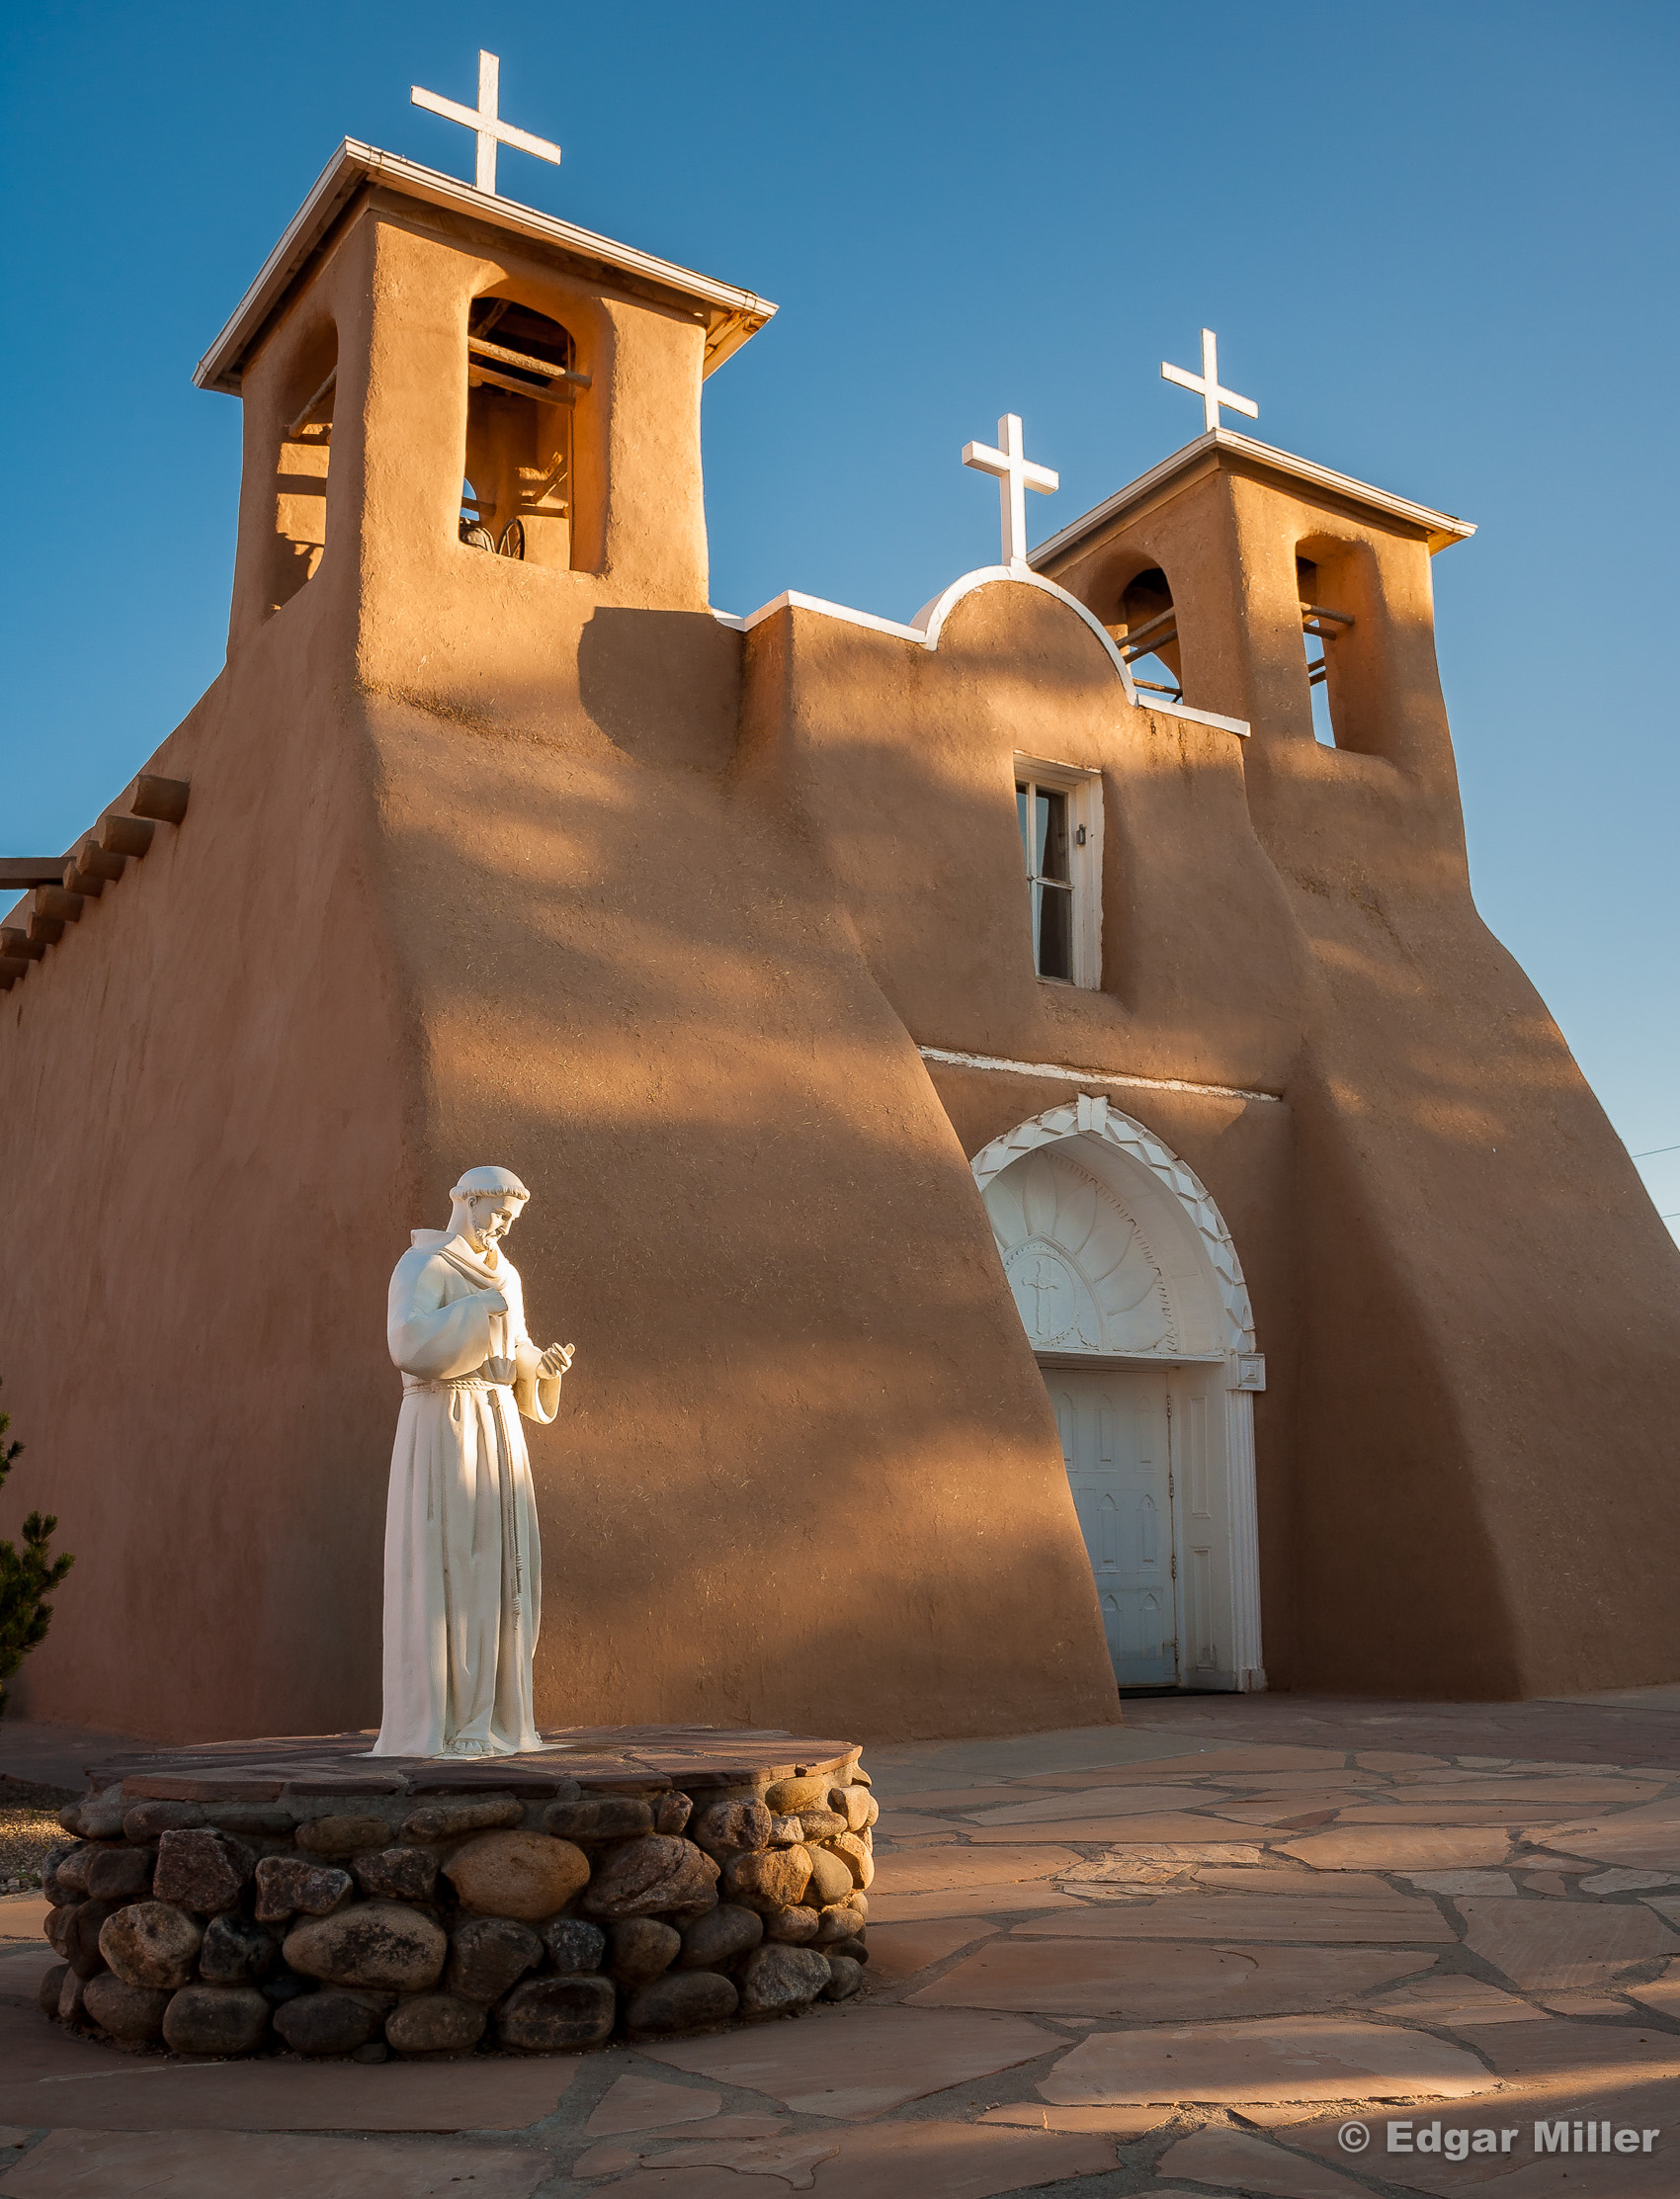 San Francisco de Asis, Ranchos de Taos, New Mexico